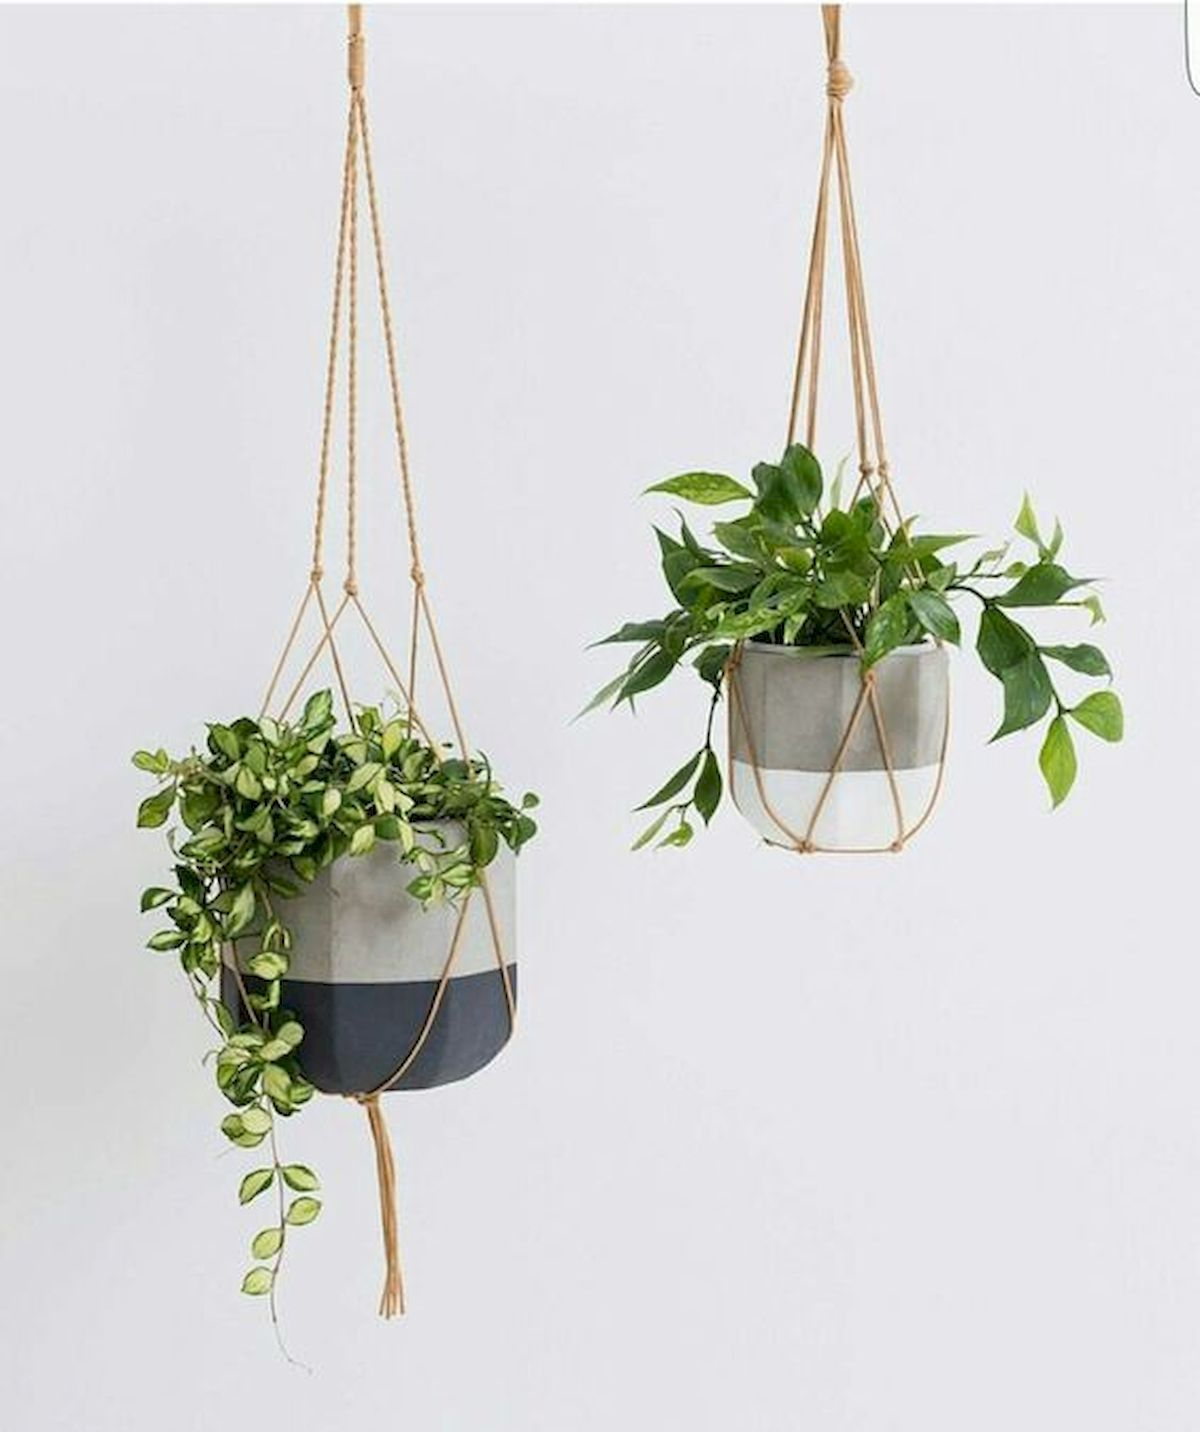 30 Cute Hanging Plants To Decorate Your Interior Home Hanging